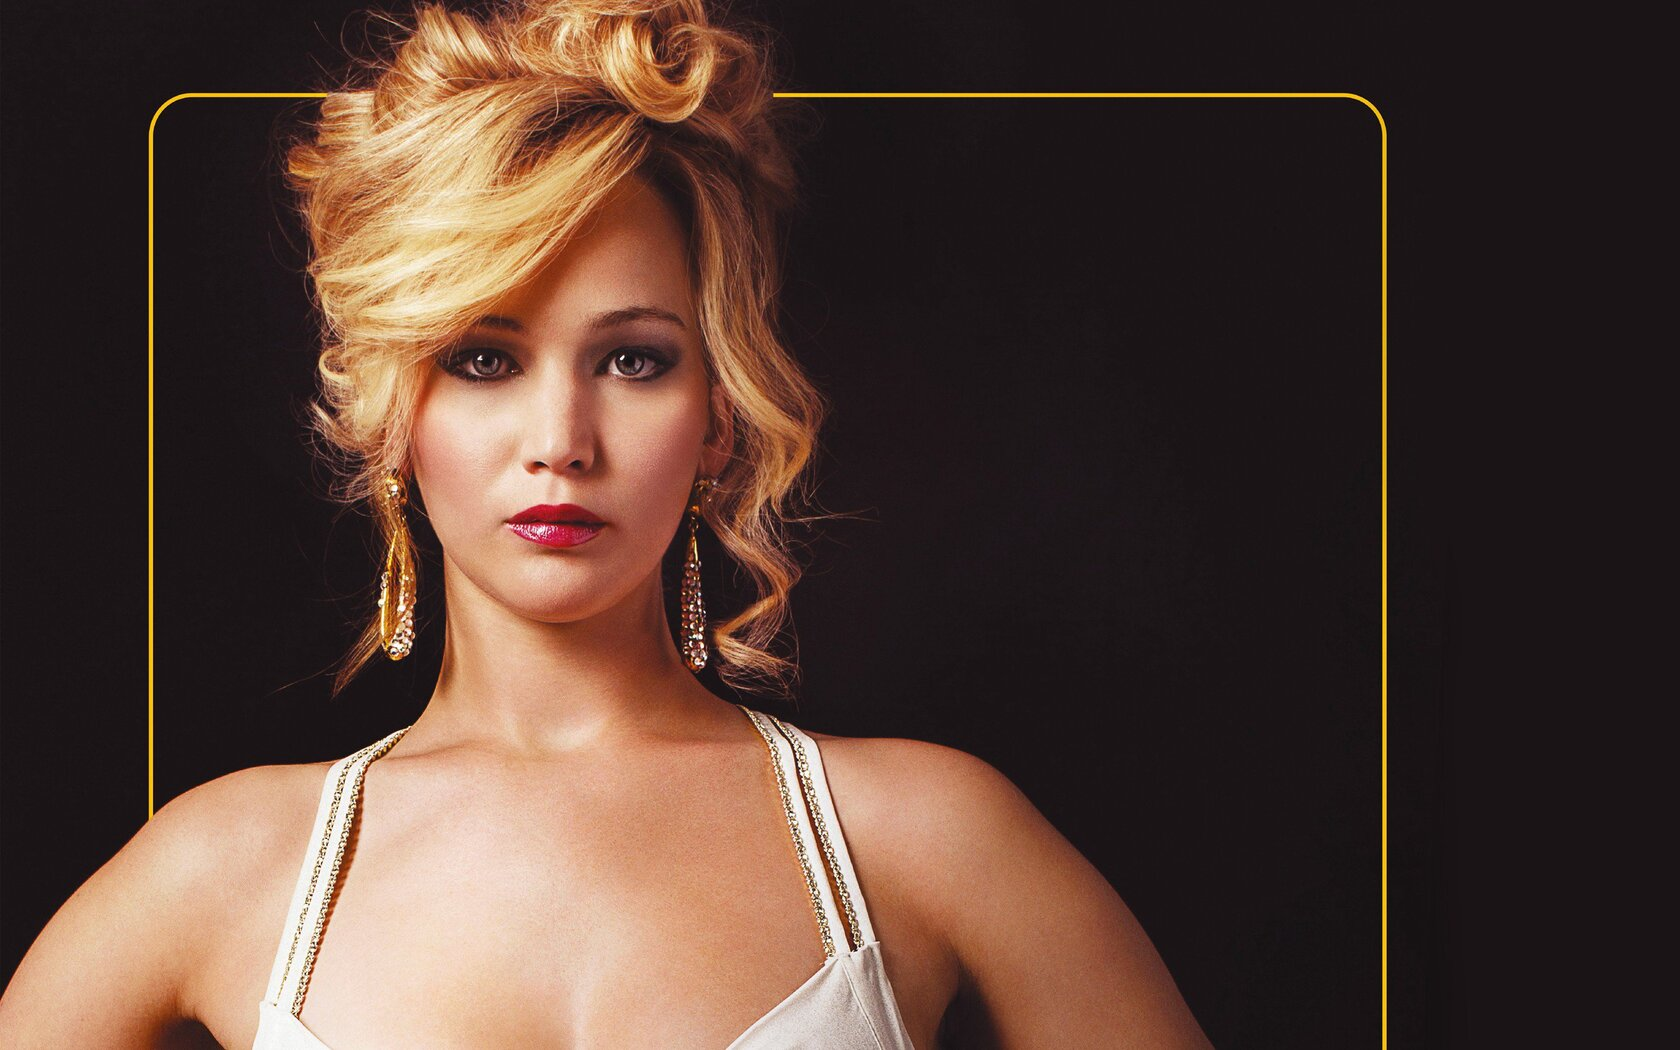 jennifer-lawrence-in-american-hustle.jpg